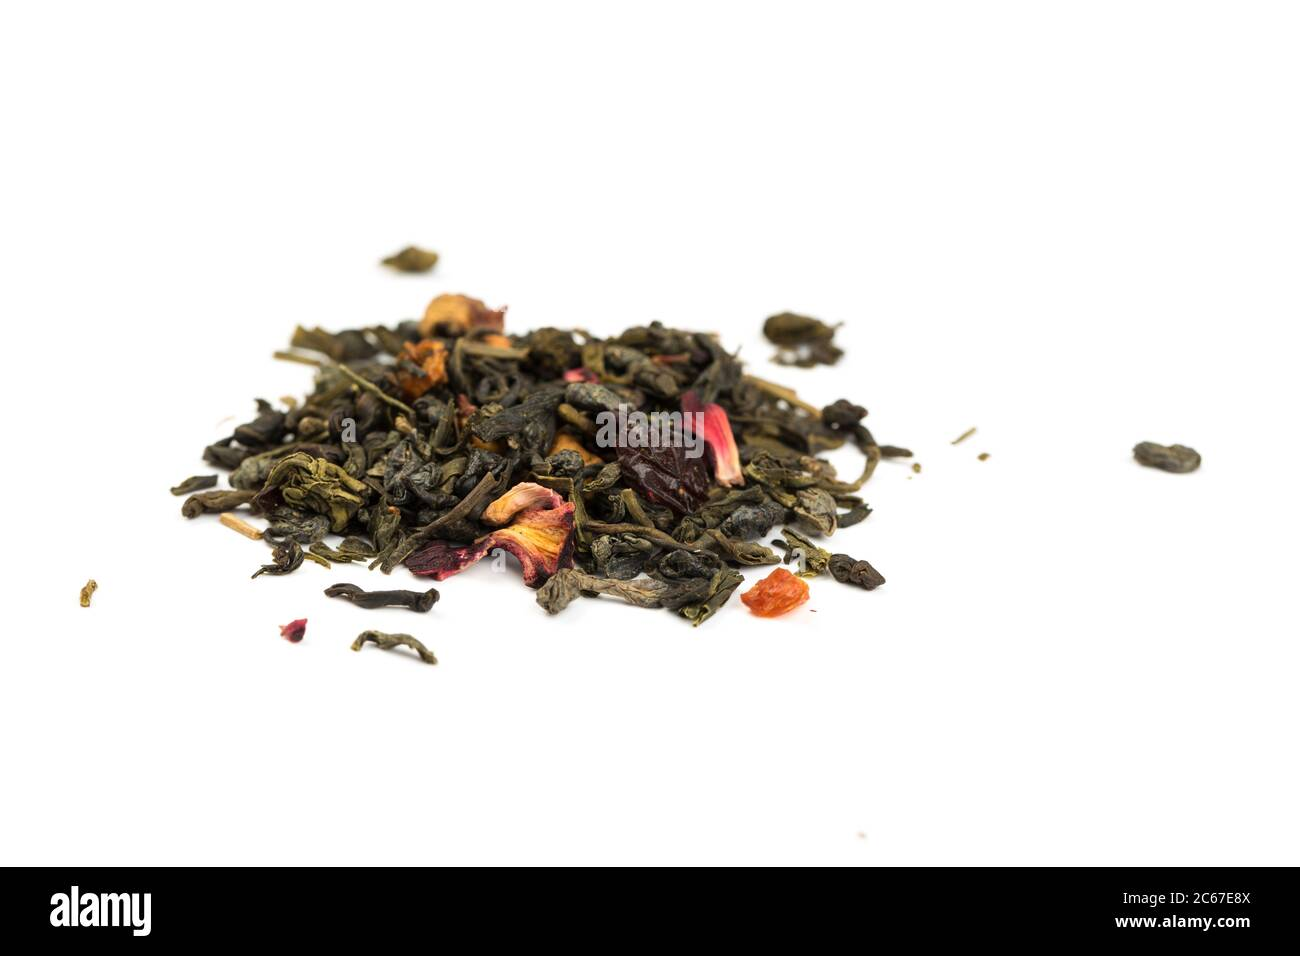 Fragrant Leaves Of Chinese Dry Tea Top Grade With Goji Berries And